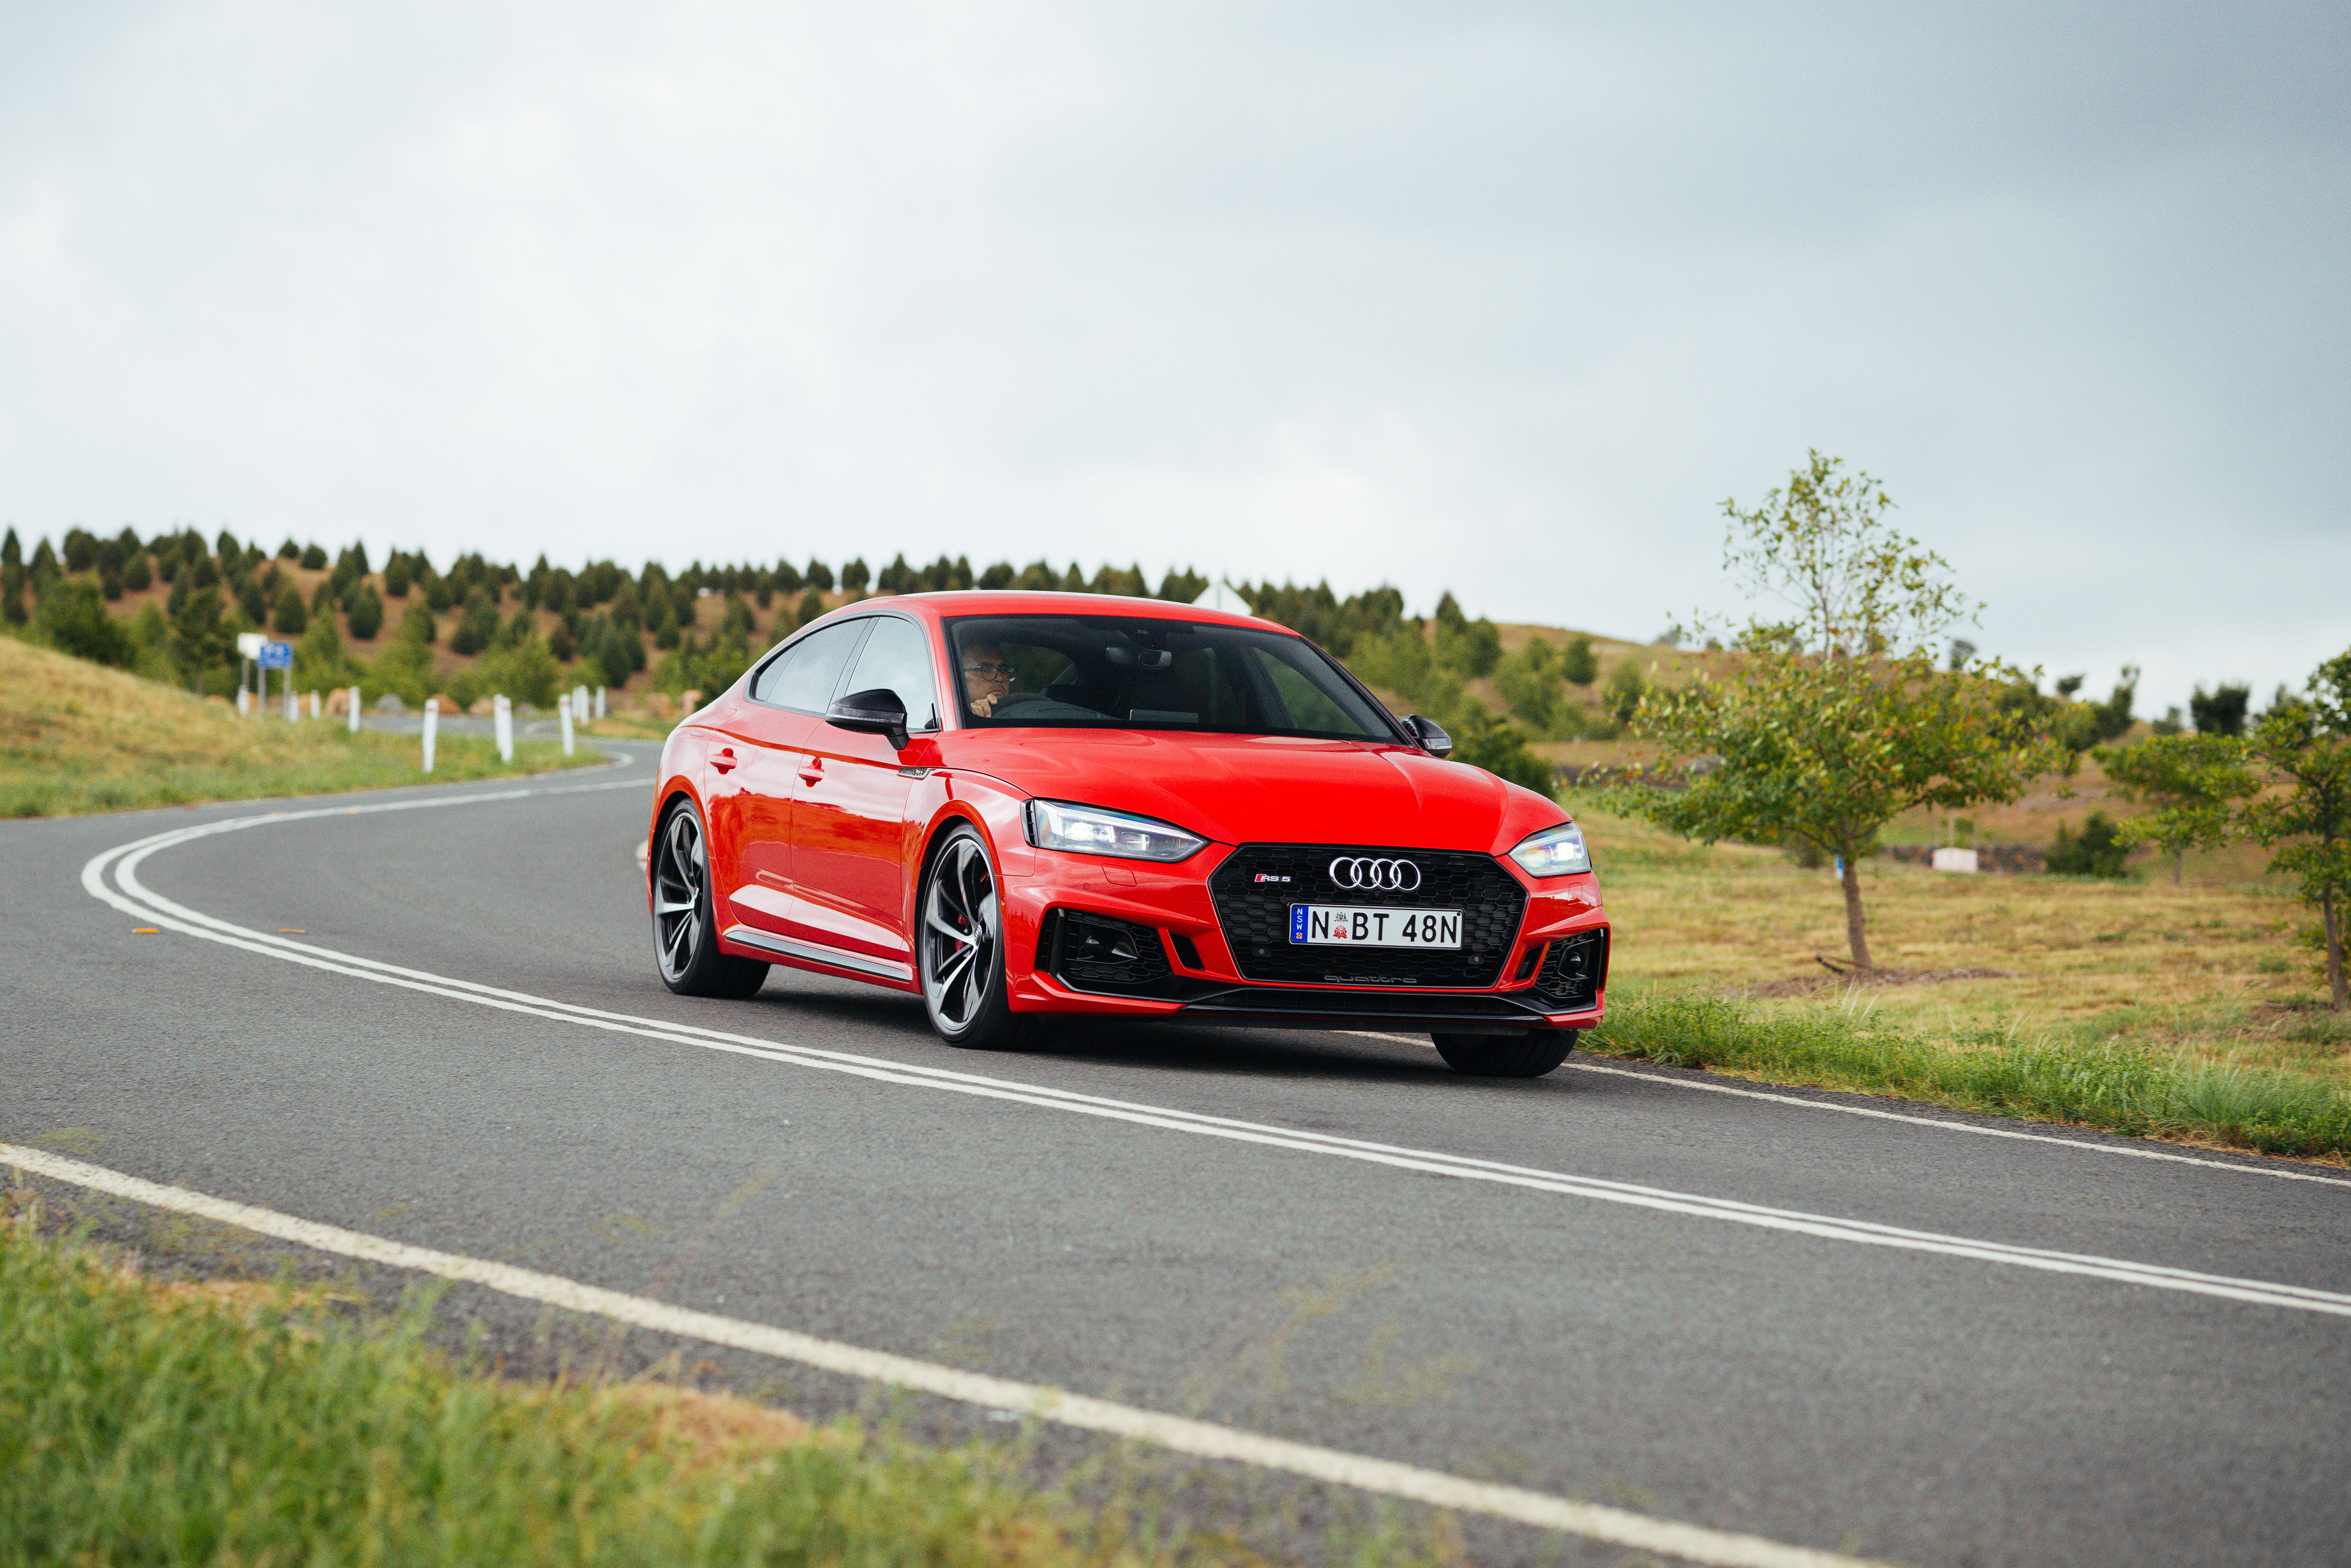 Audi's RS-5 Sportback – five doors makes this a most attractive and practical GT car